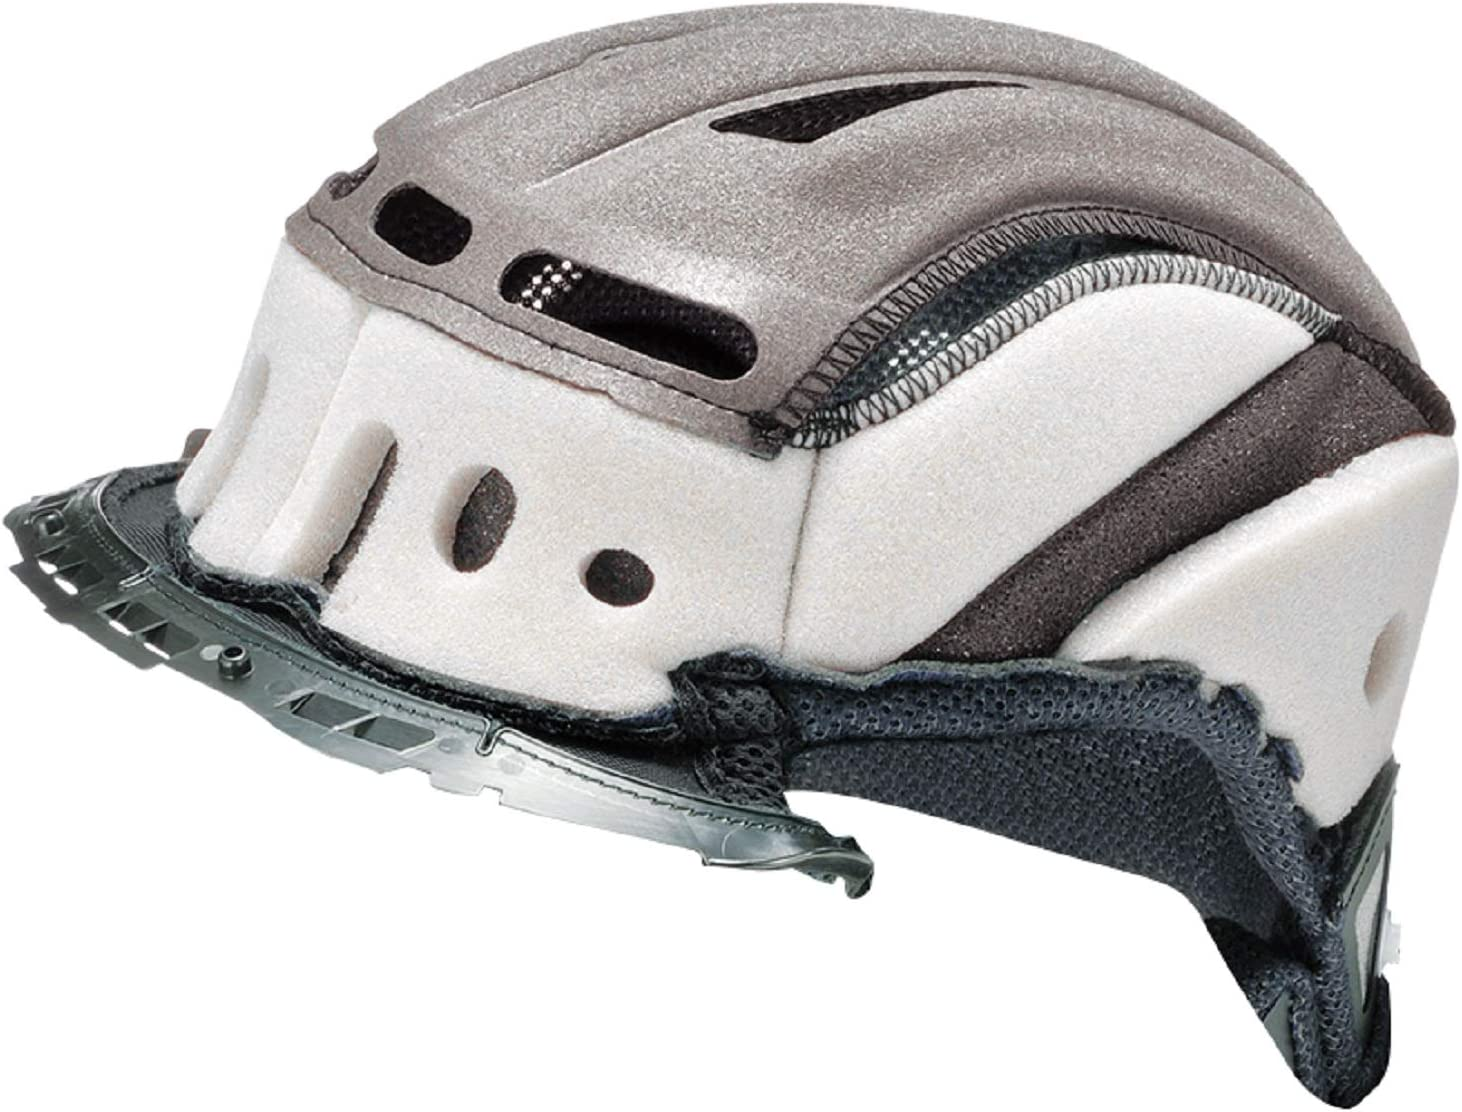 Nippon regular agency Popular products Shoei Neotec Center Pad L9 Helmet Motorcycle Street Accessories